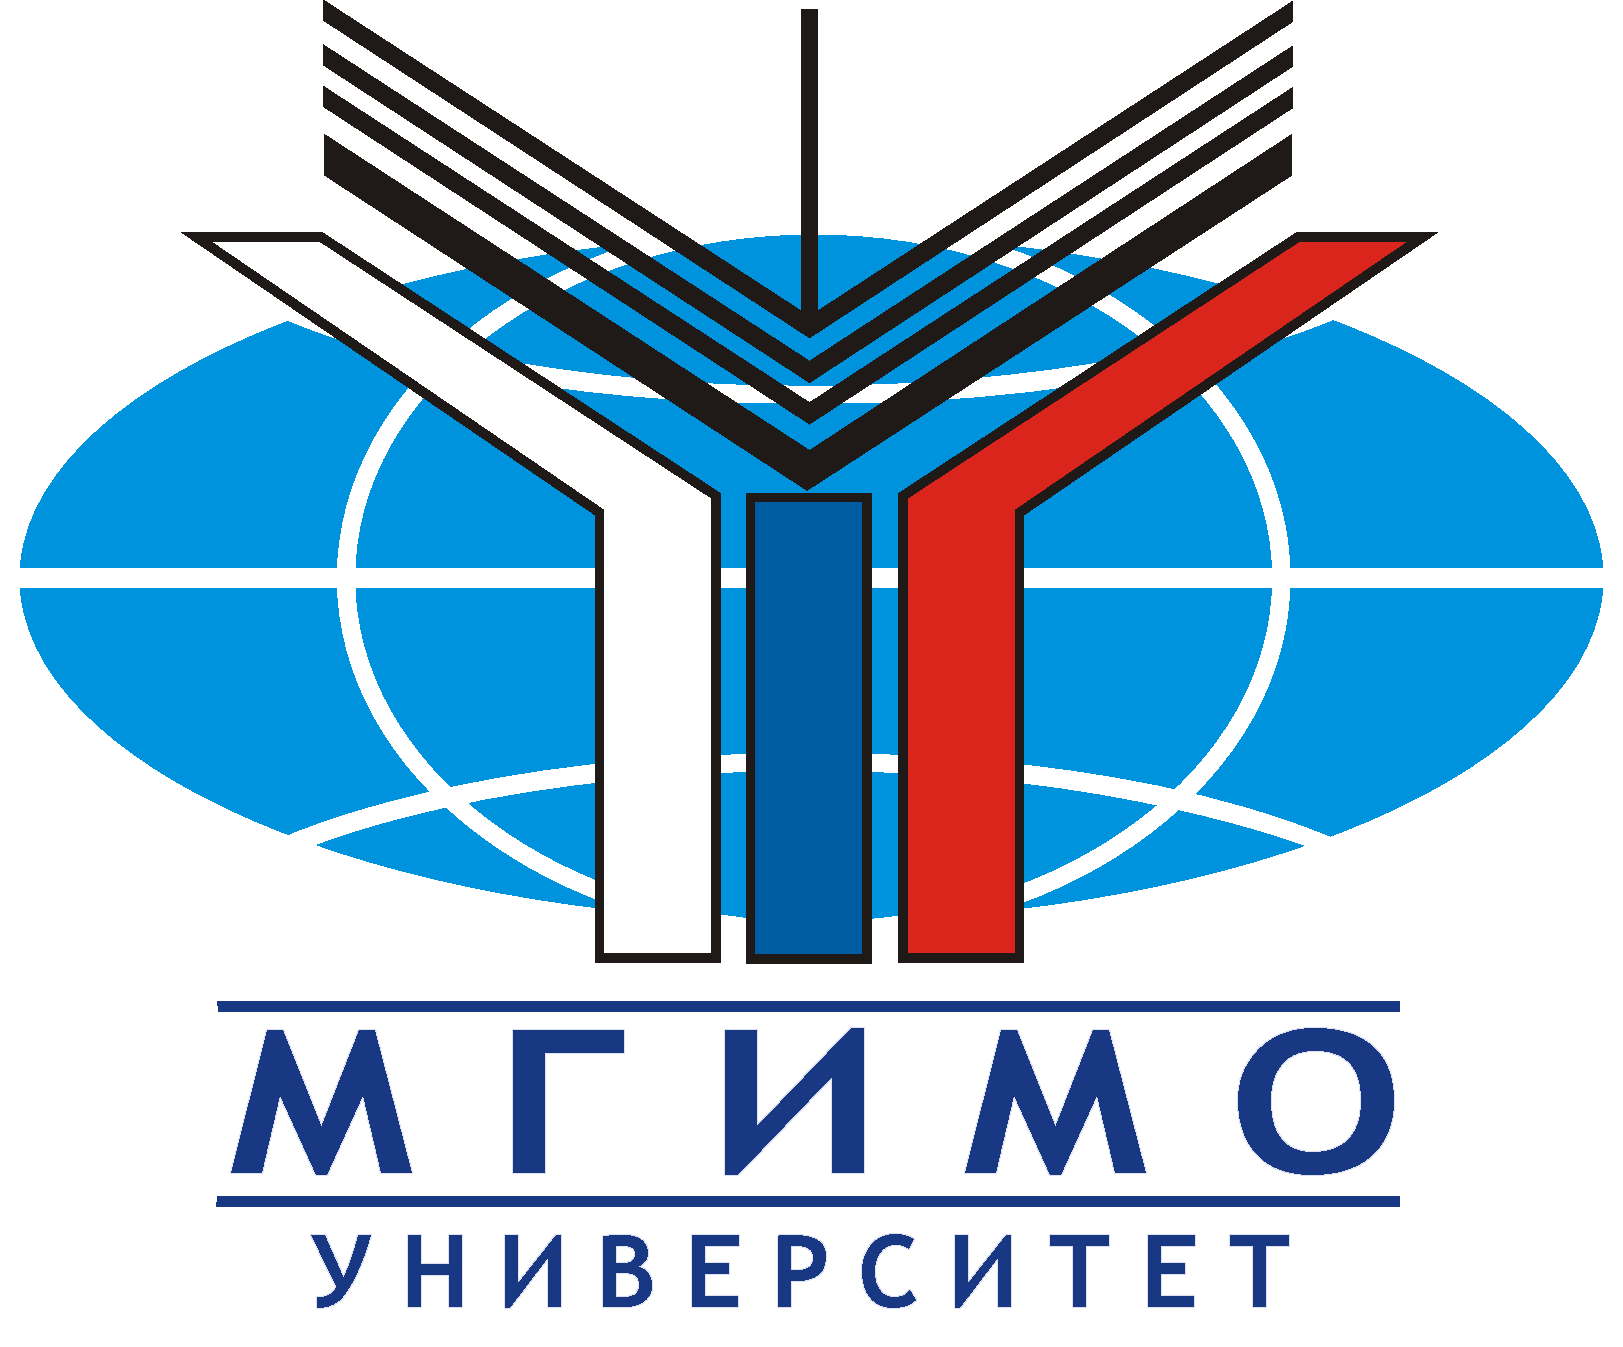 Moscow State Institute of International Relations - Mgimo